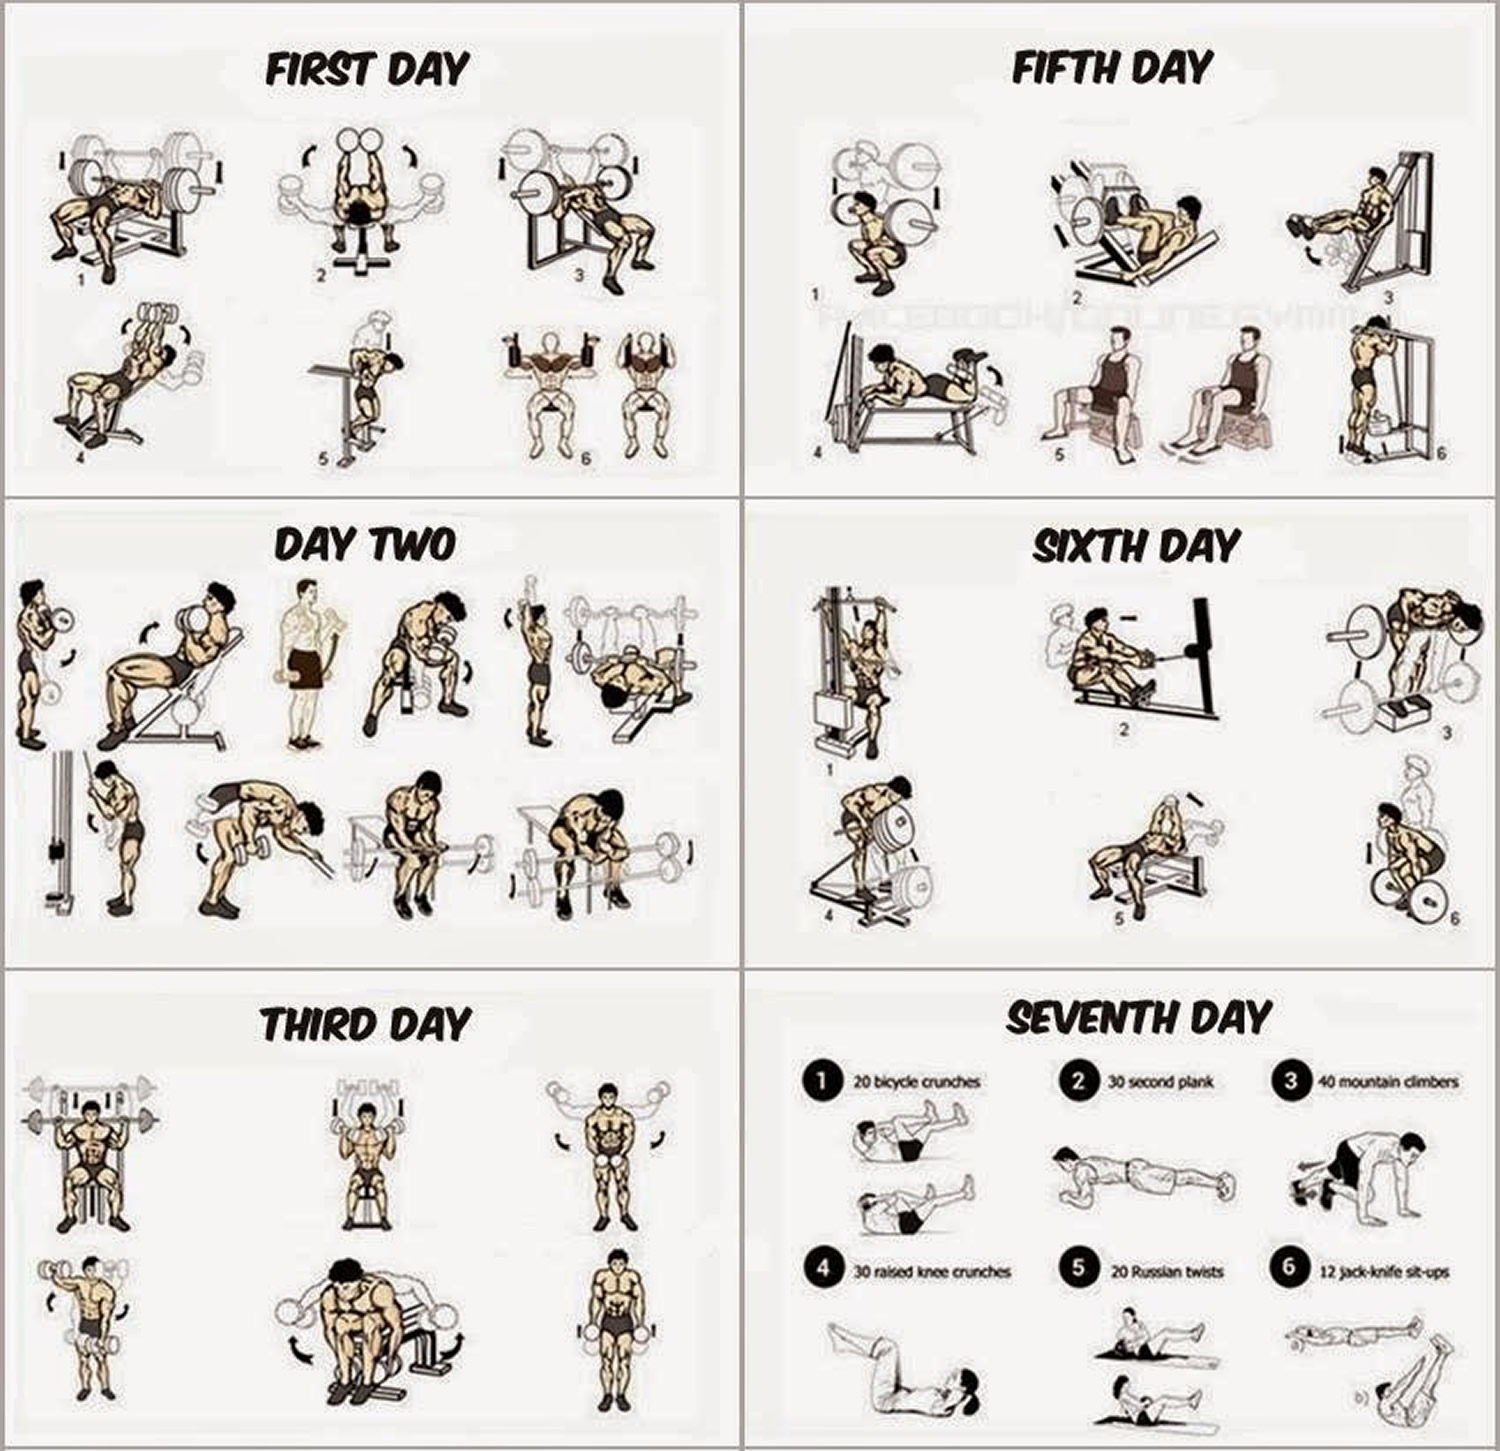 Gym Workout Chart For Chest For Men What Is The Best Workout Routine For Building Muscle